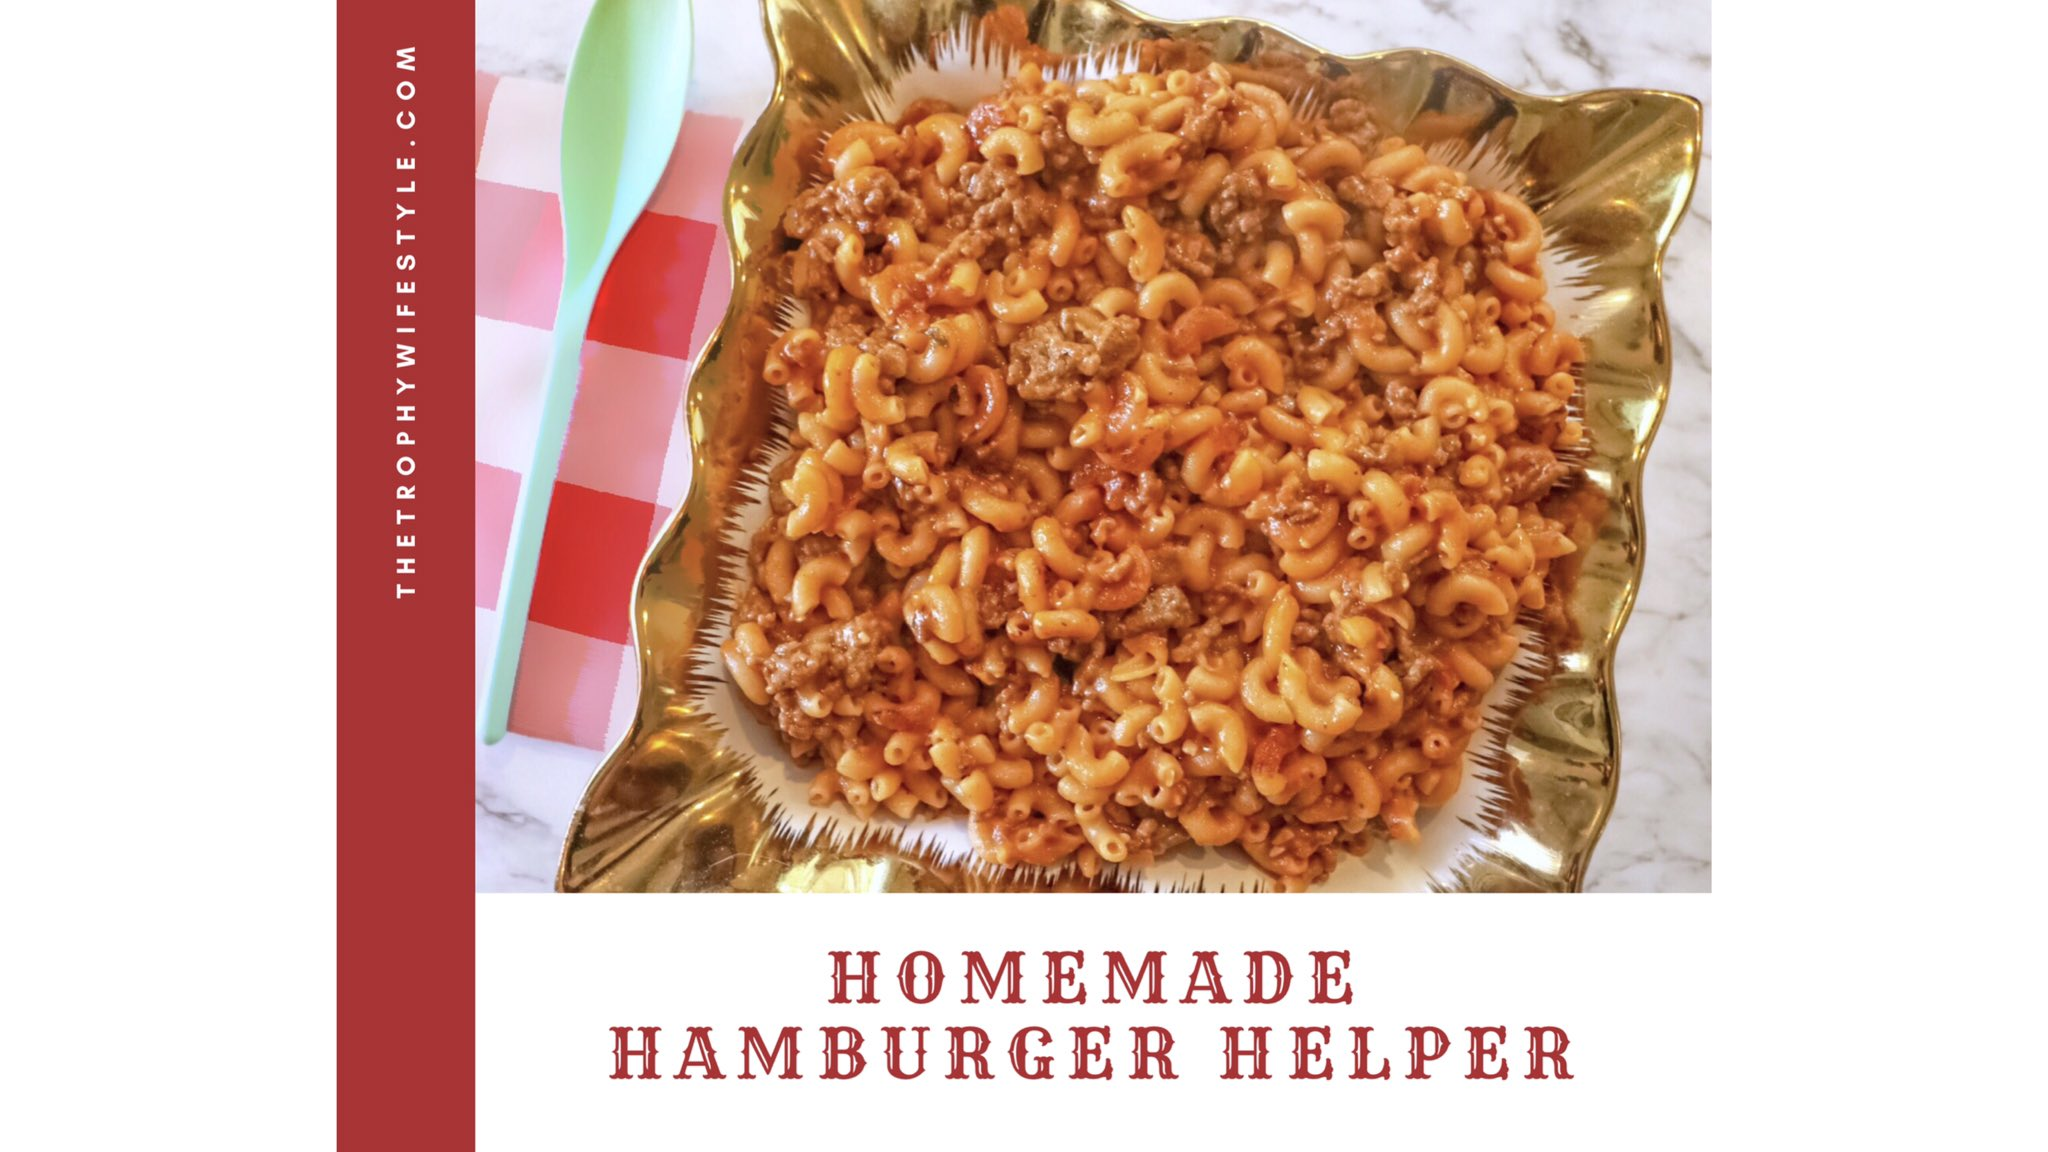 RT @kourtneelynne: Homemade Hamburger Helper 😻  Recipe 👉🏼 https://t.co/Xdjou5kMVX https://t.co/zaXW7gRRCB